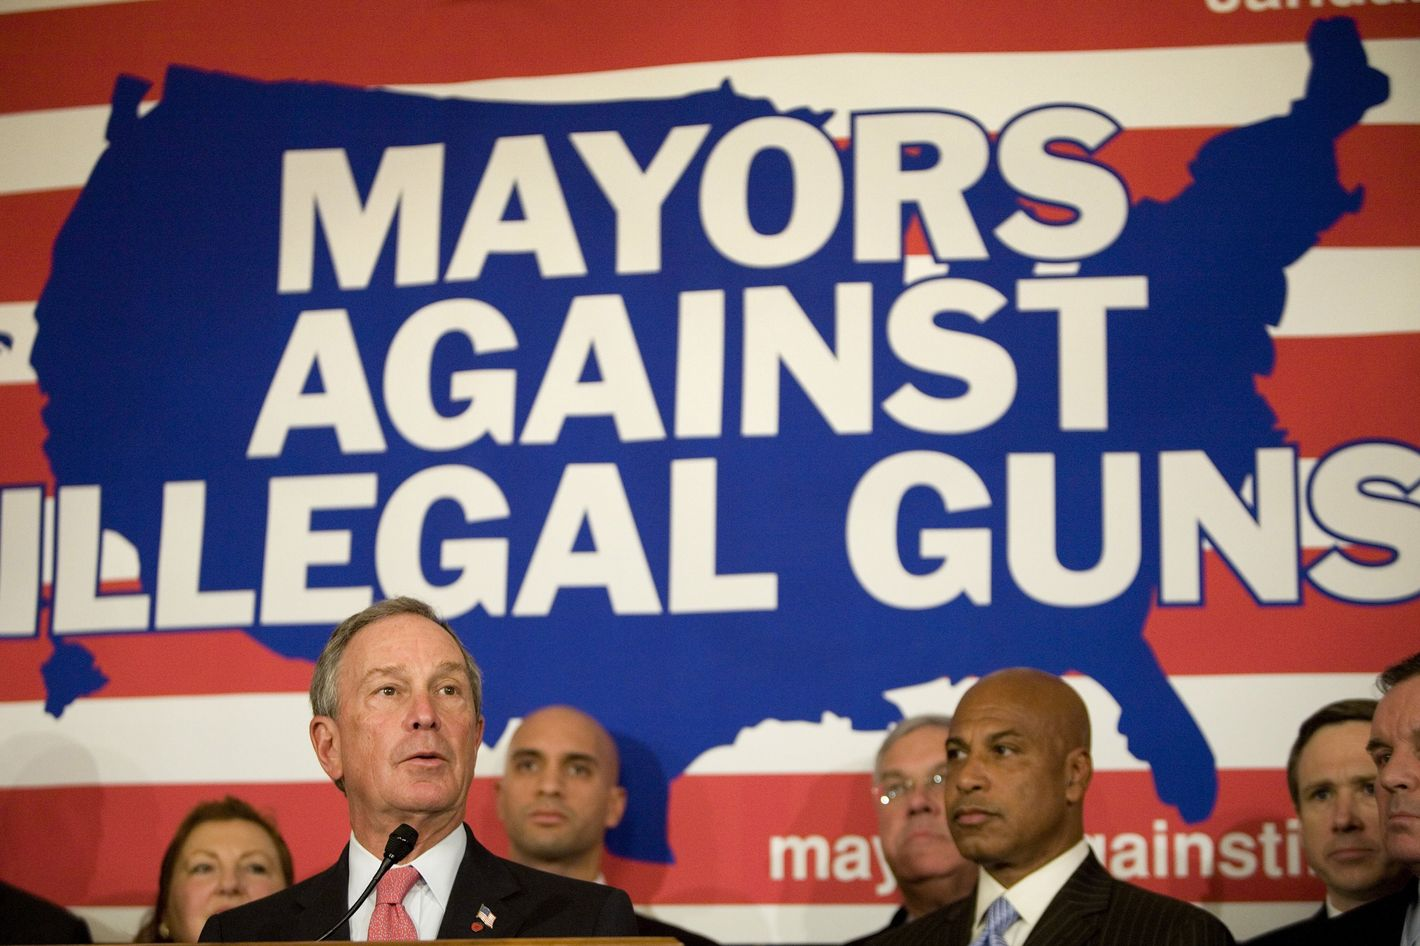 New York City Mayor Michael Bloomberg  (L) speaks during a news conference on Capitol Hill January 23, 2007 in Washington, DC.  Mayors from 52 cities around the United States and members of Congress joined together for a conference on crime and guns.